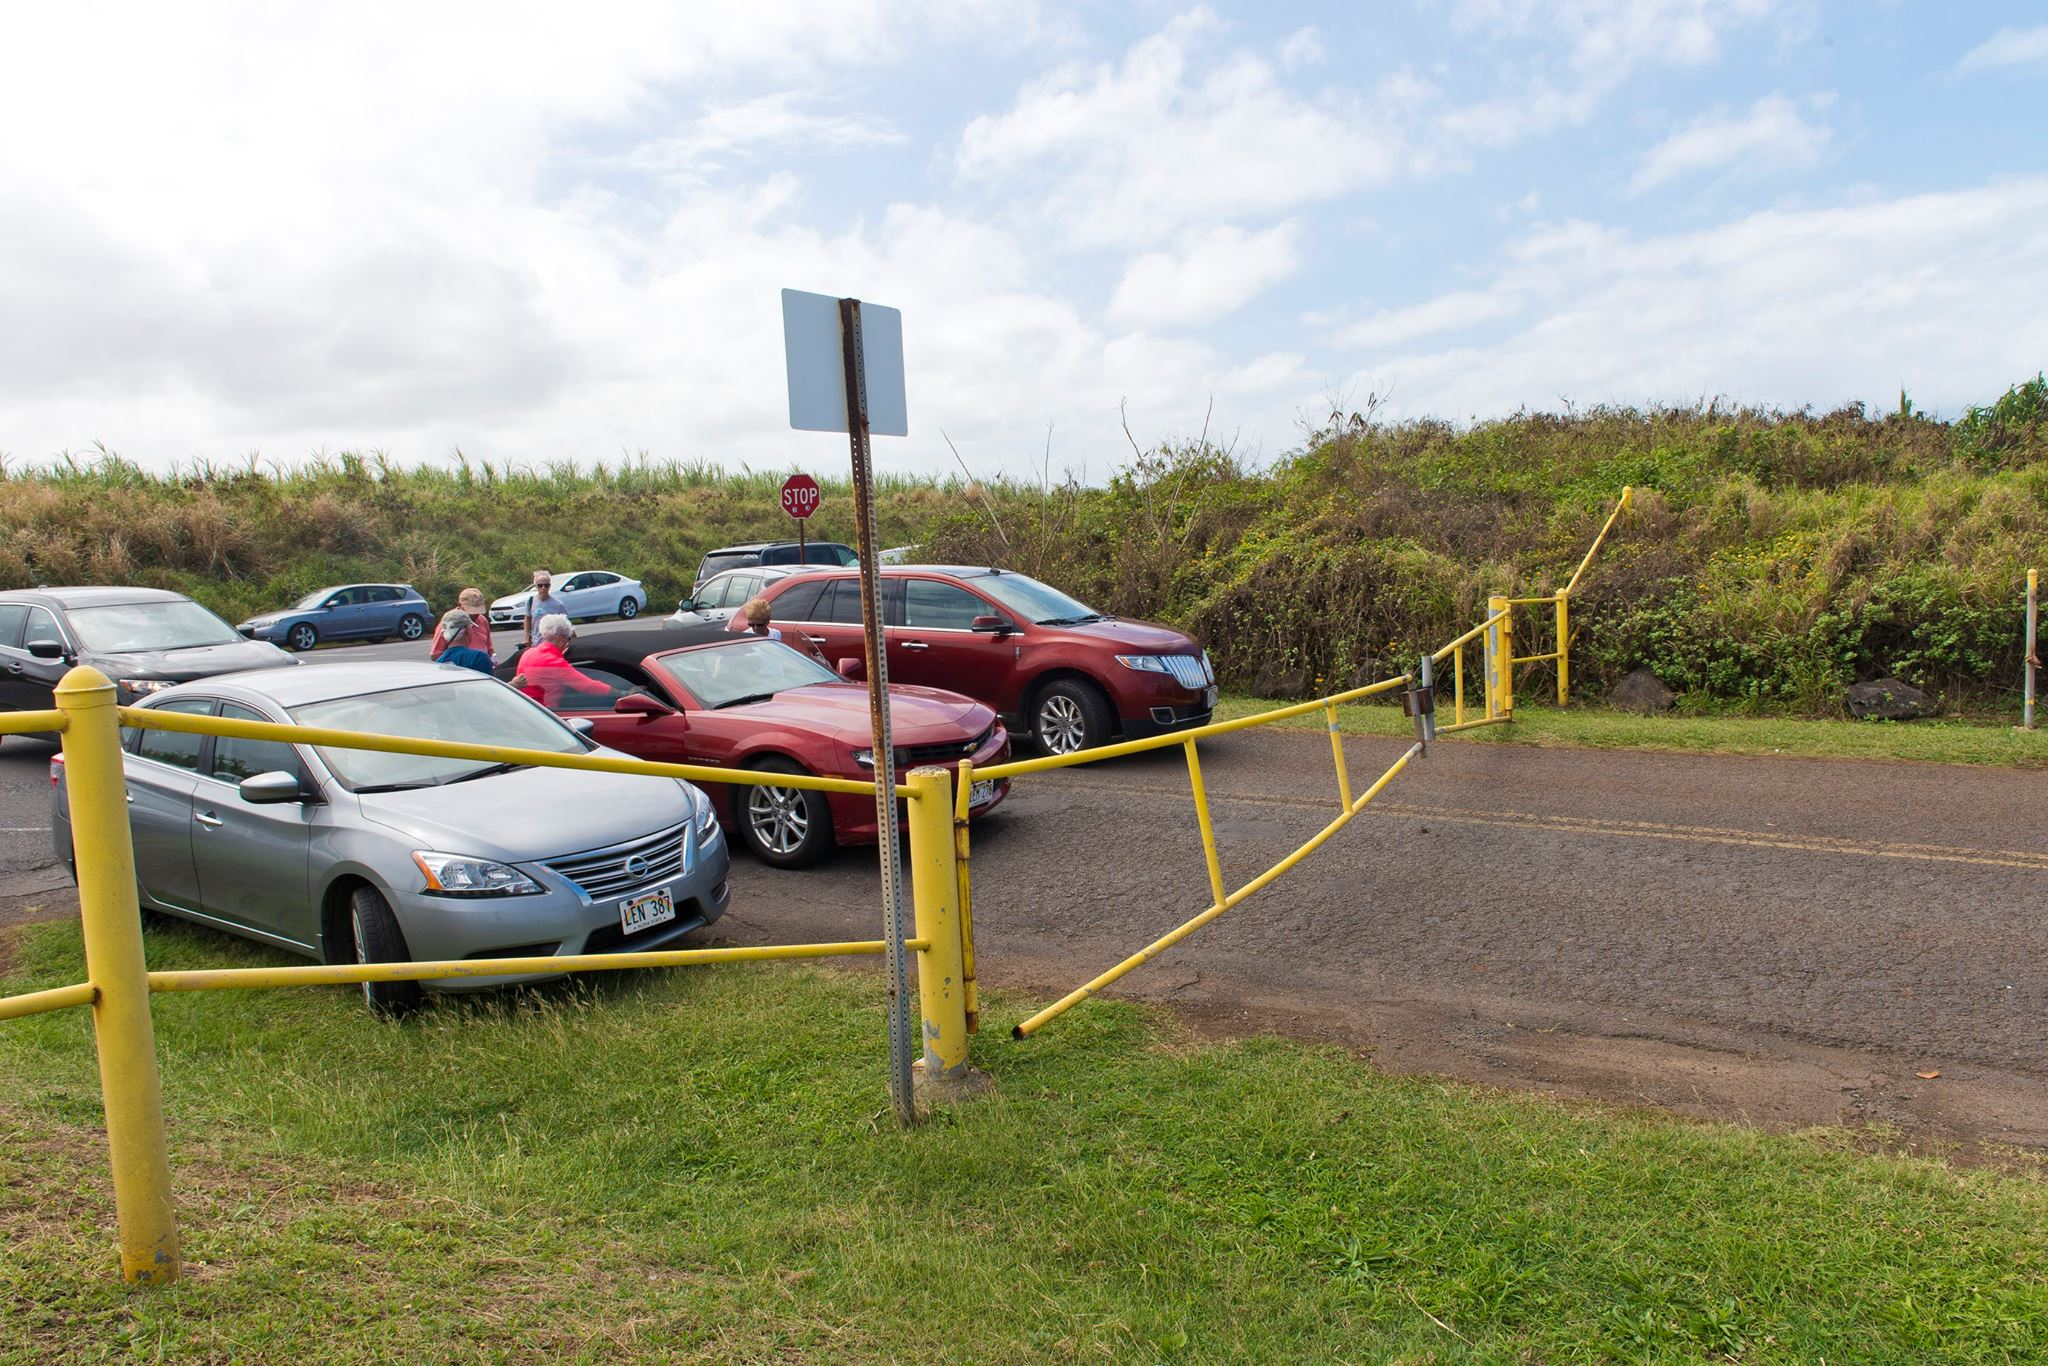 Pothole Repairs Planned at Hoʻokipa Beach Parking Lot